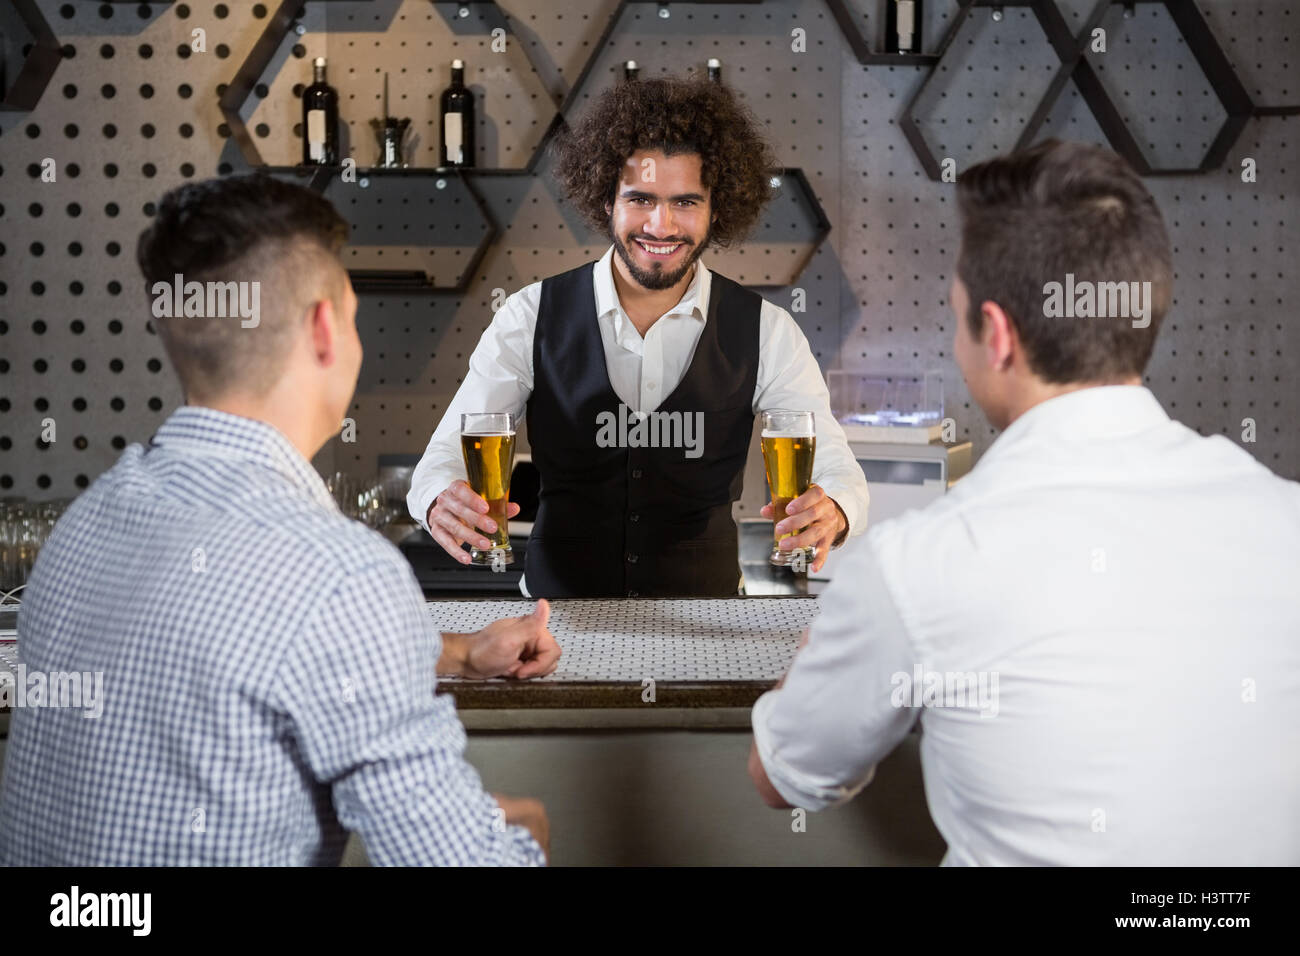 Bartender serving beer to customers - Stock Image